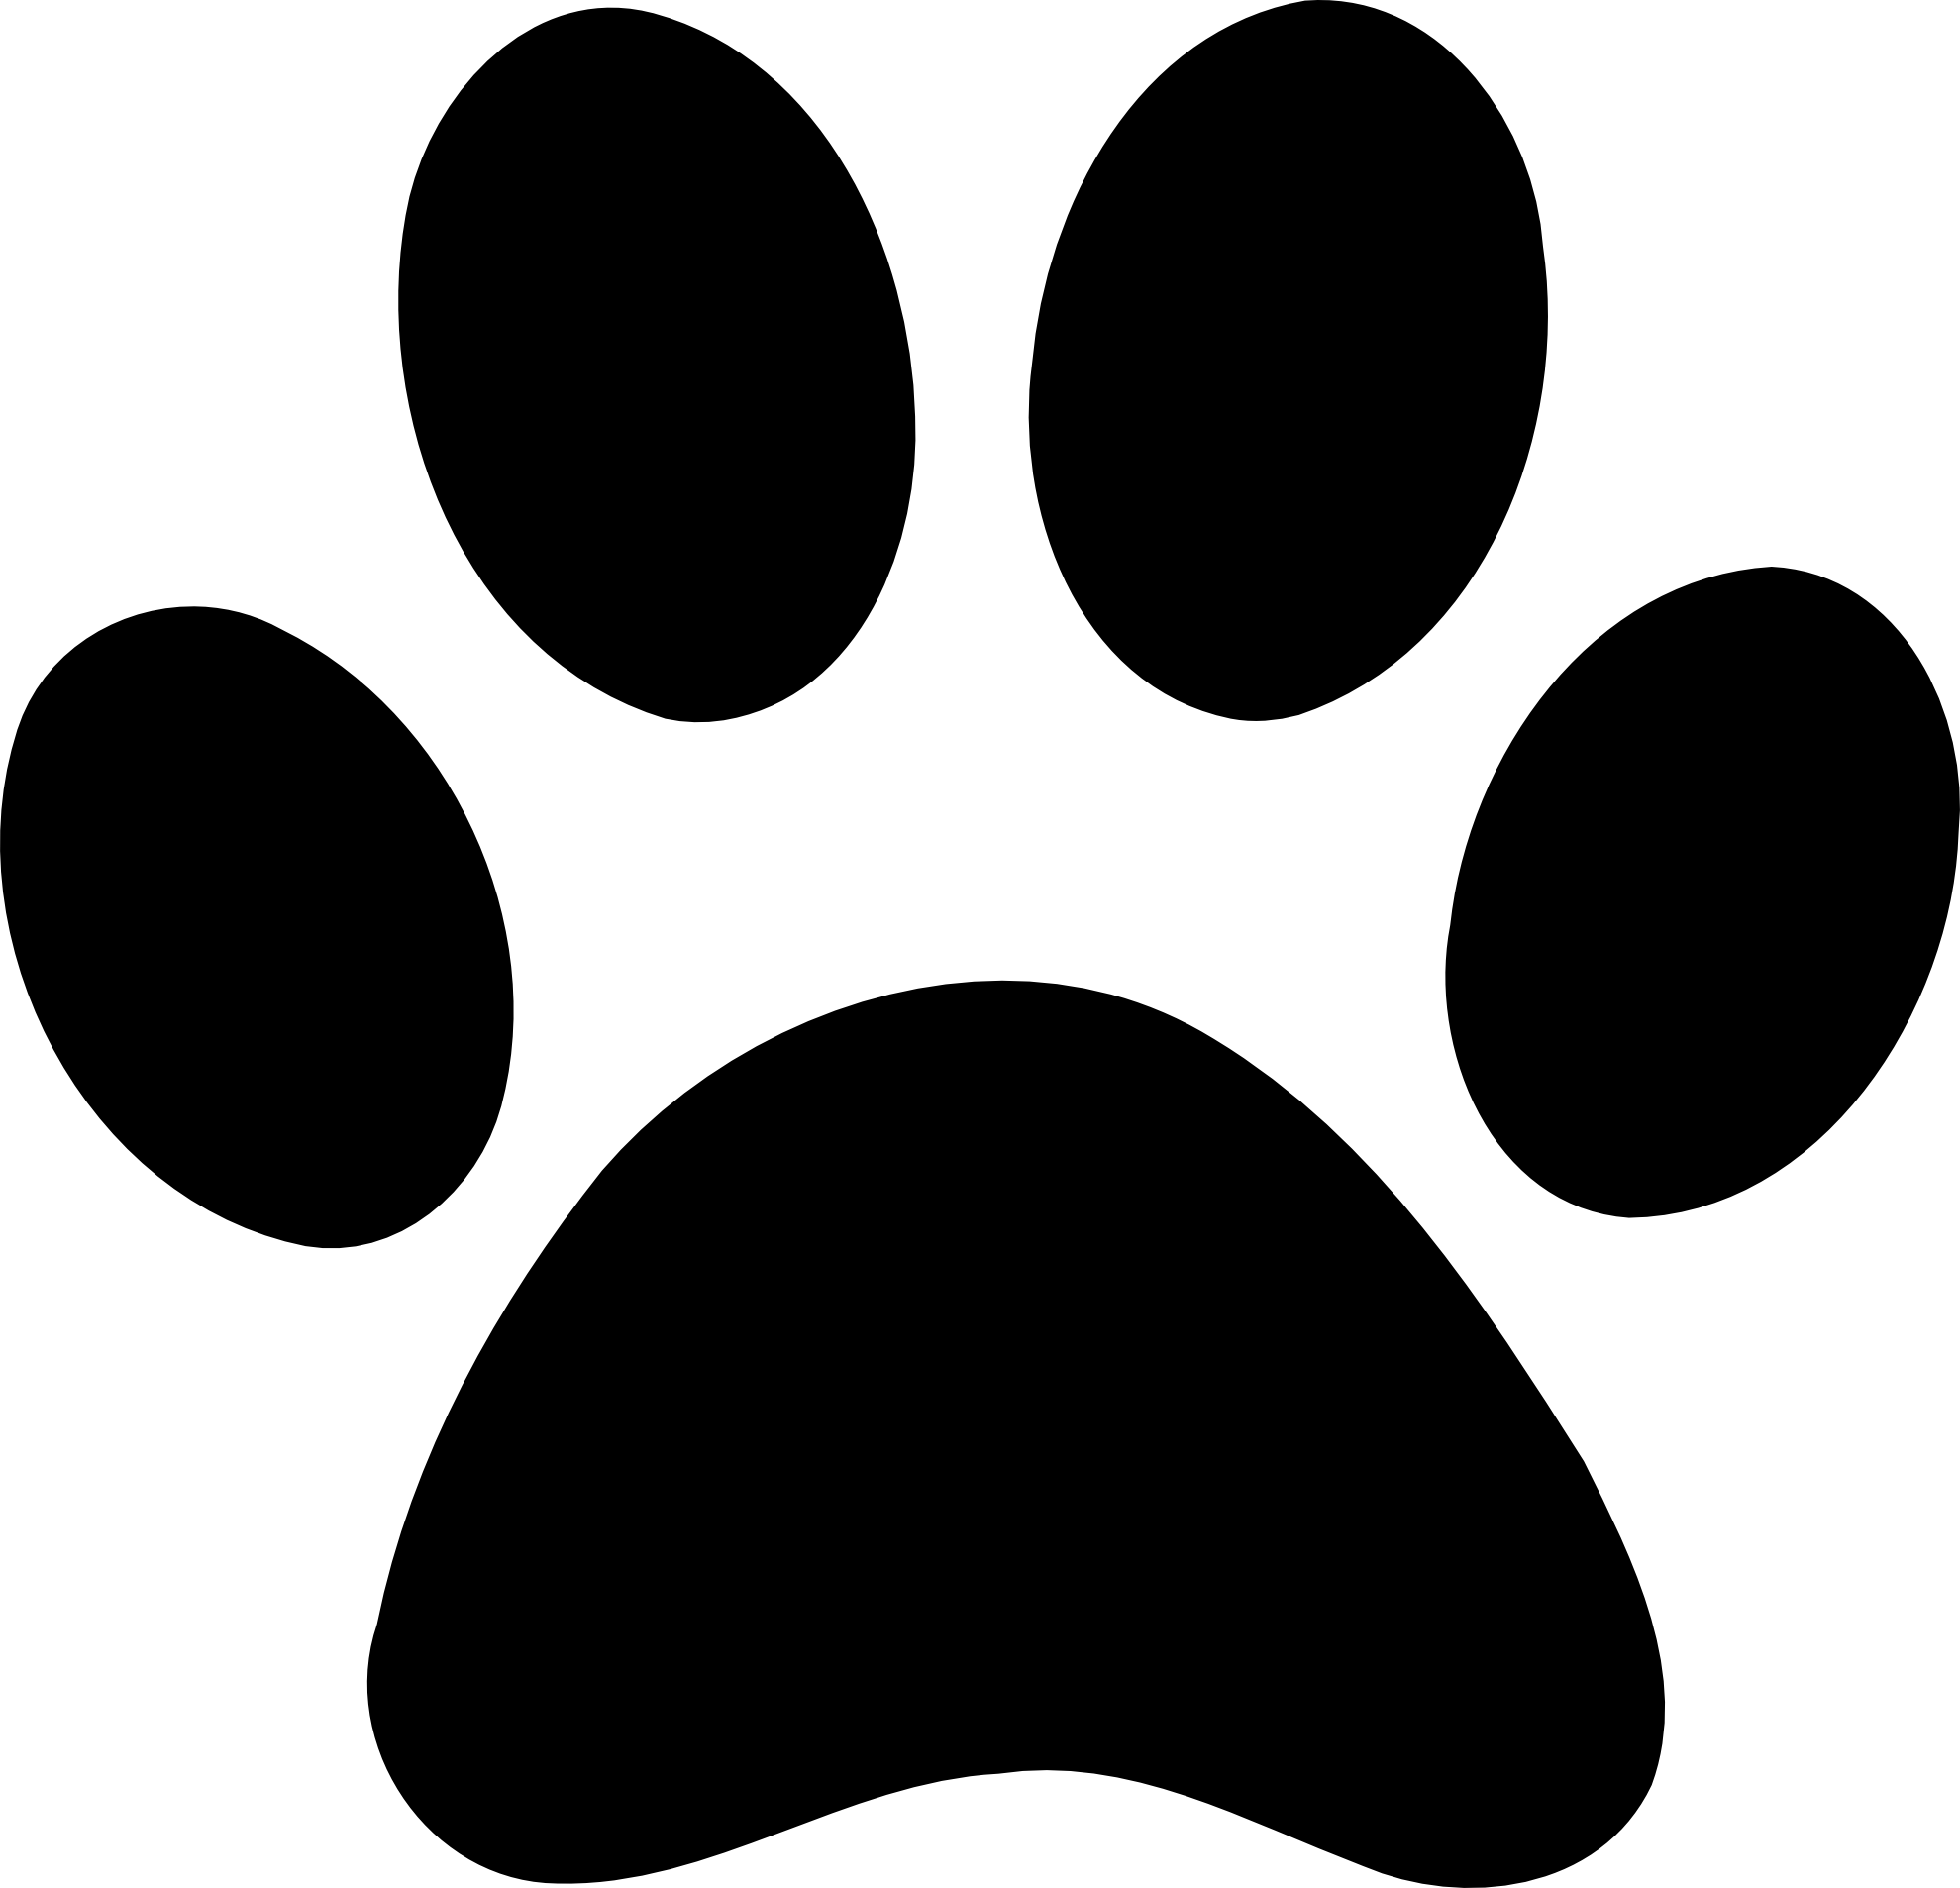 Displaying Images For Bear Tracks Clipar-Displaying Images For Bear Tracks Clipart-6